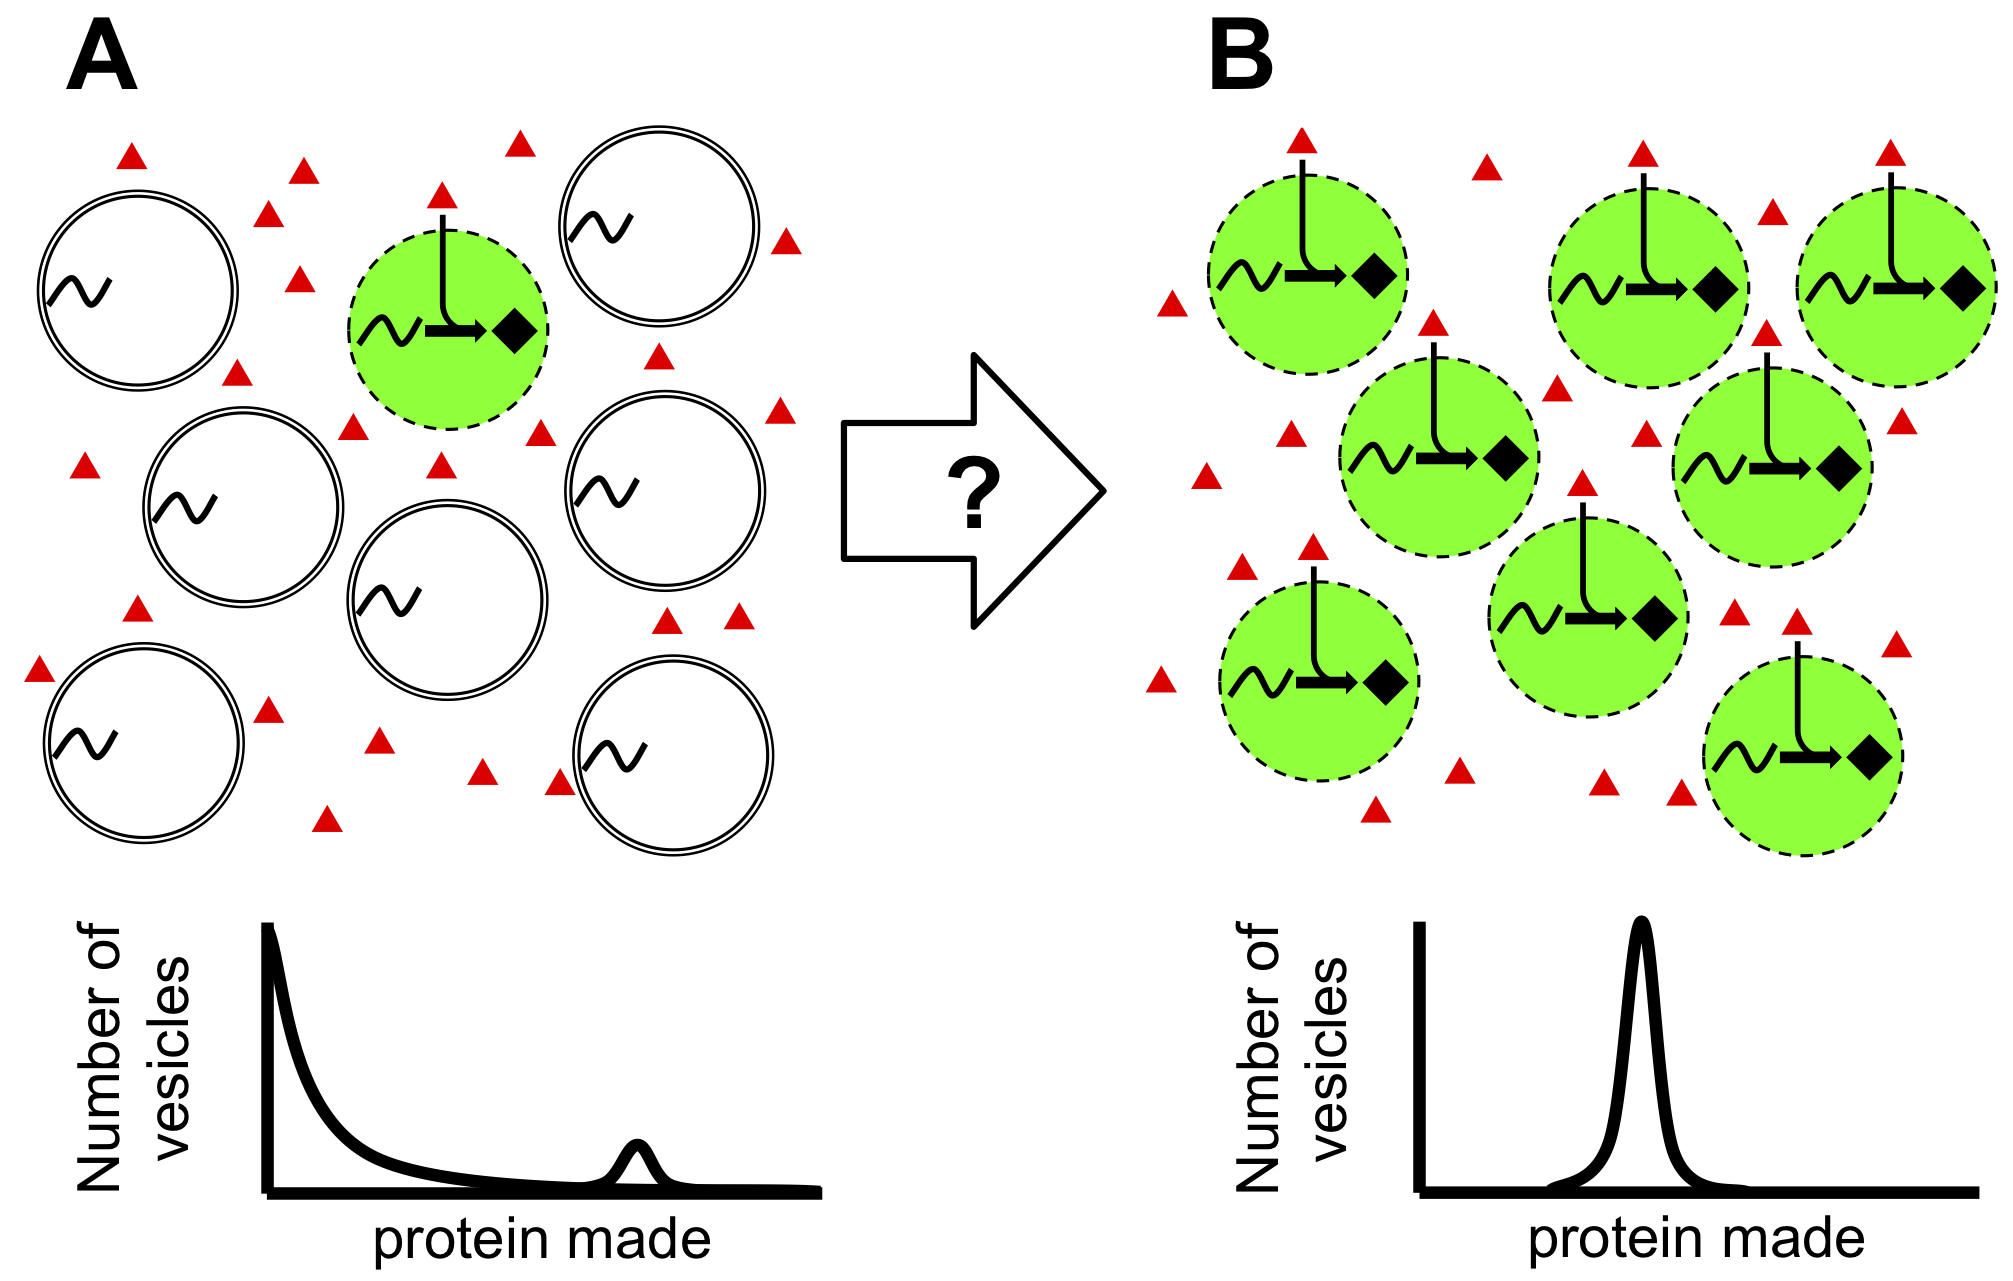 Figure: Engineering membranes for uniform protein production.  (A) (Top) A population of vesicles where only a few vesicles are permeable to resources essential for expression (red triangles) in the outer solution and thus able to make protein (black diamonds and green background). (Bottom) The result is a highly skewed protein population distribution where most vesicles make no protein and a few make large amounts of protein. (B) A process to make more vesicles permeable to protein expression resources (Top) would result in a more uniform protein population distribution (Bottom).